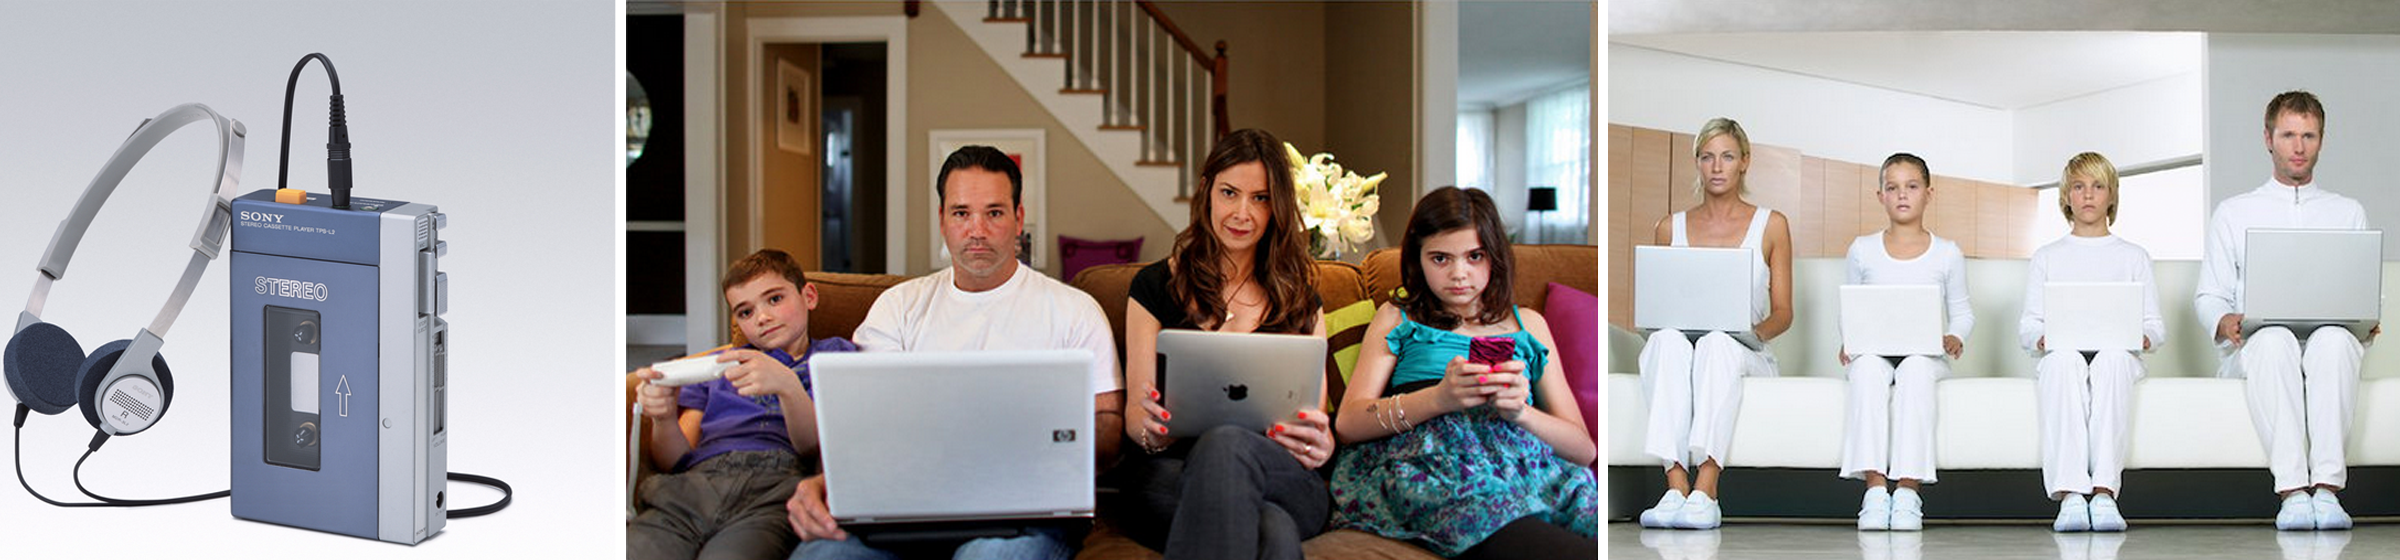 family and technology Nowhere is the impact of popular culture and technology on children's relationships more noticeable than in families both influences have contributed to a growing divide between the traditional.